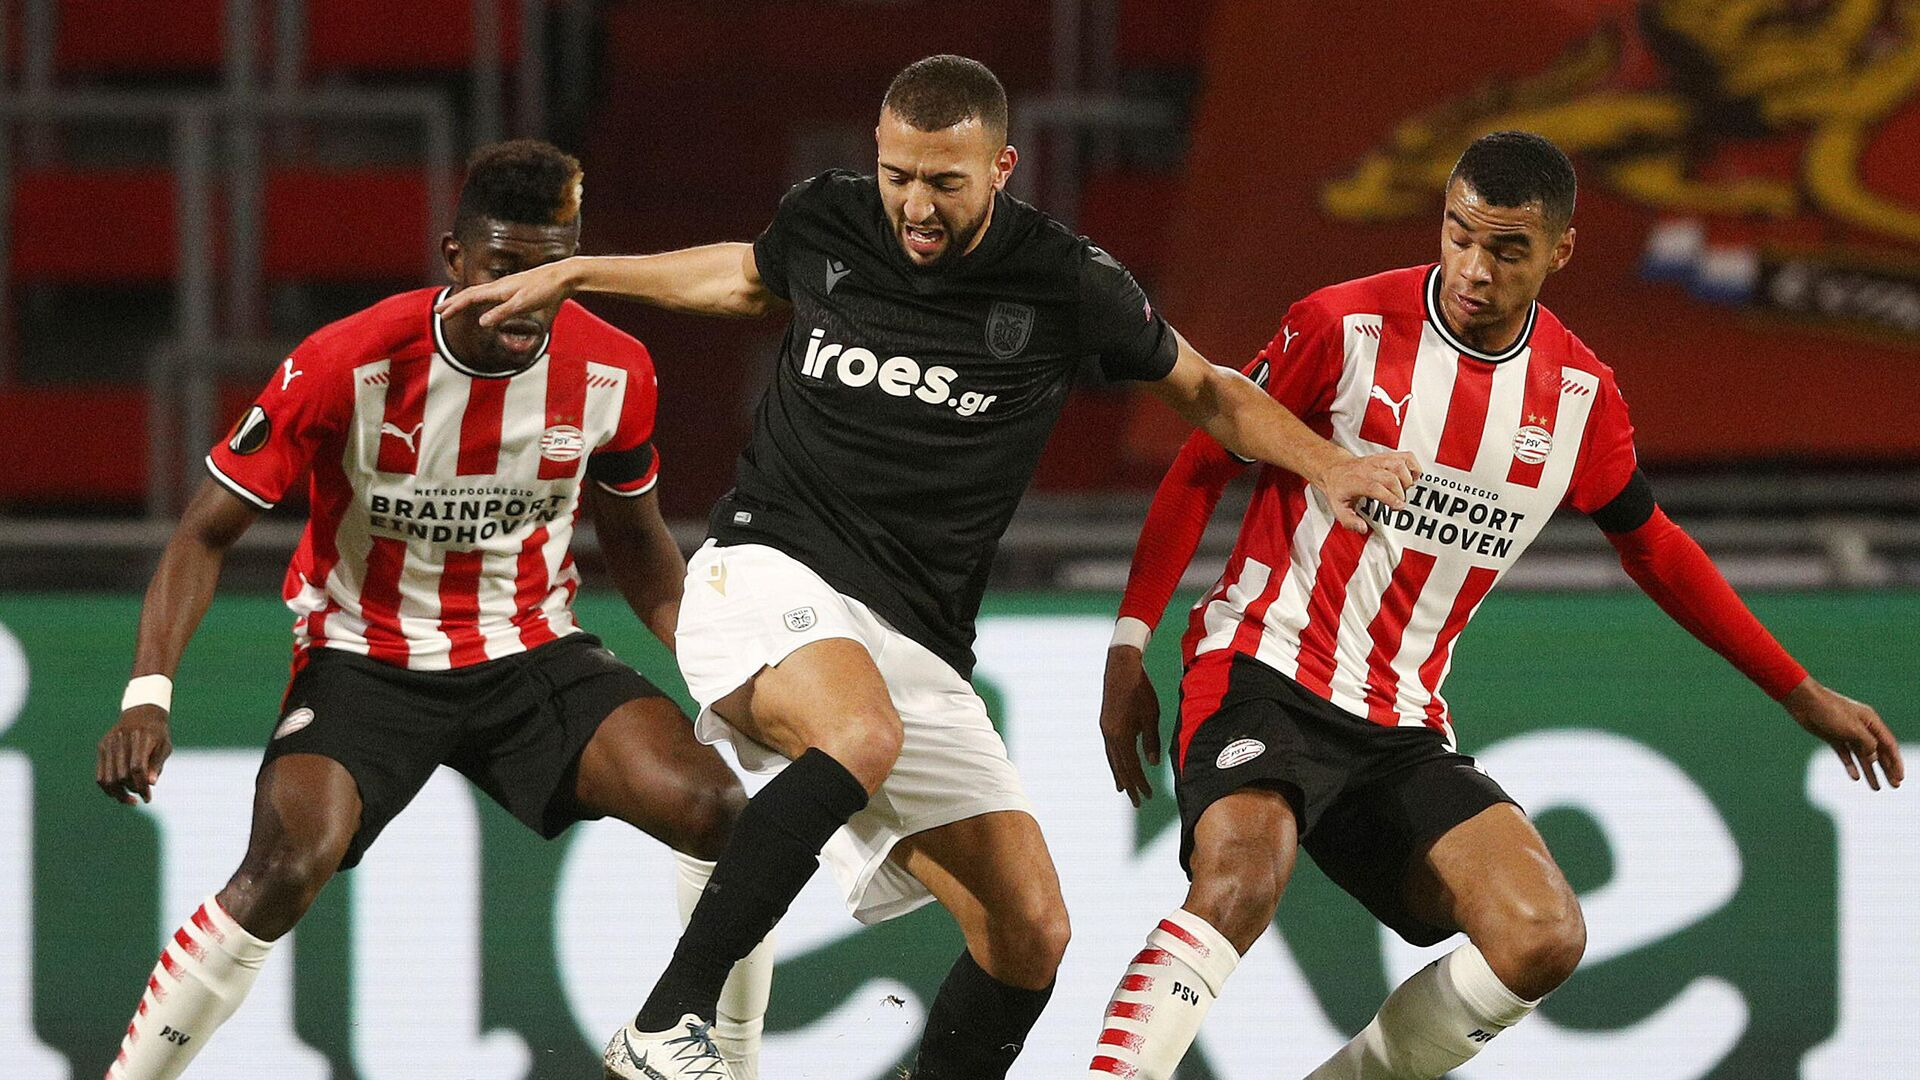 PAOK FC's Belgian midfielder Omar El Kaddouri (C) fights for the ball with PSV Eindhoven's Ivorian midfielder Ibrahim Sangare (L) and PSV Eindhoven's Dutch forward Cody Gakpo (R) during the UEFA Europa League group E football match between PSV Eindhoven and PAOK FC Saloniki at the PSV stadium on November 26, 2020 in Eindhoven. (Photo by Olaf KRAAK / ANP / AFP) / Netherlands OUT - РИА Новости, 1920, 27.11.2020